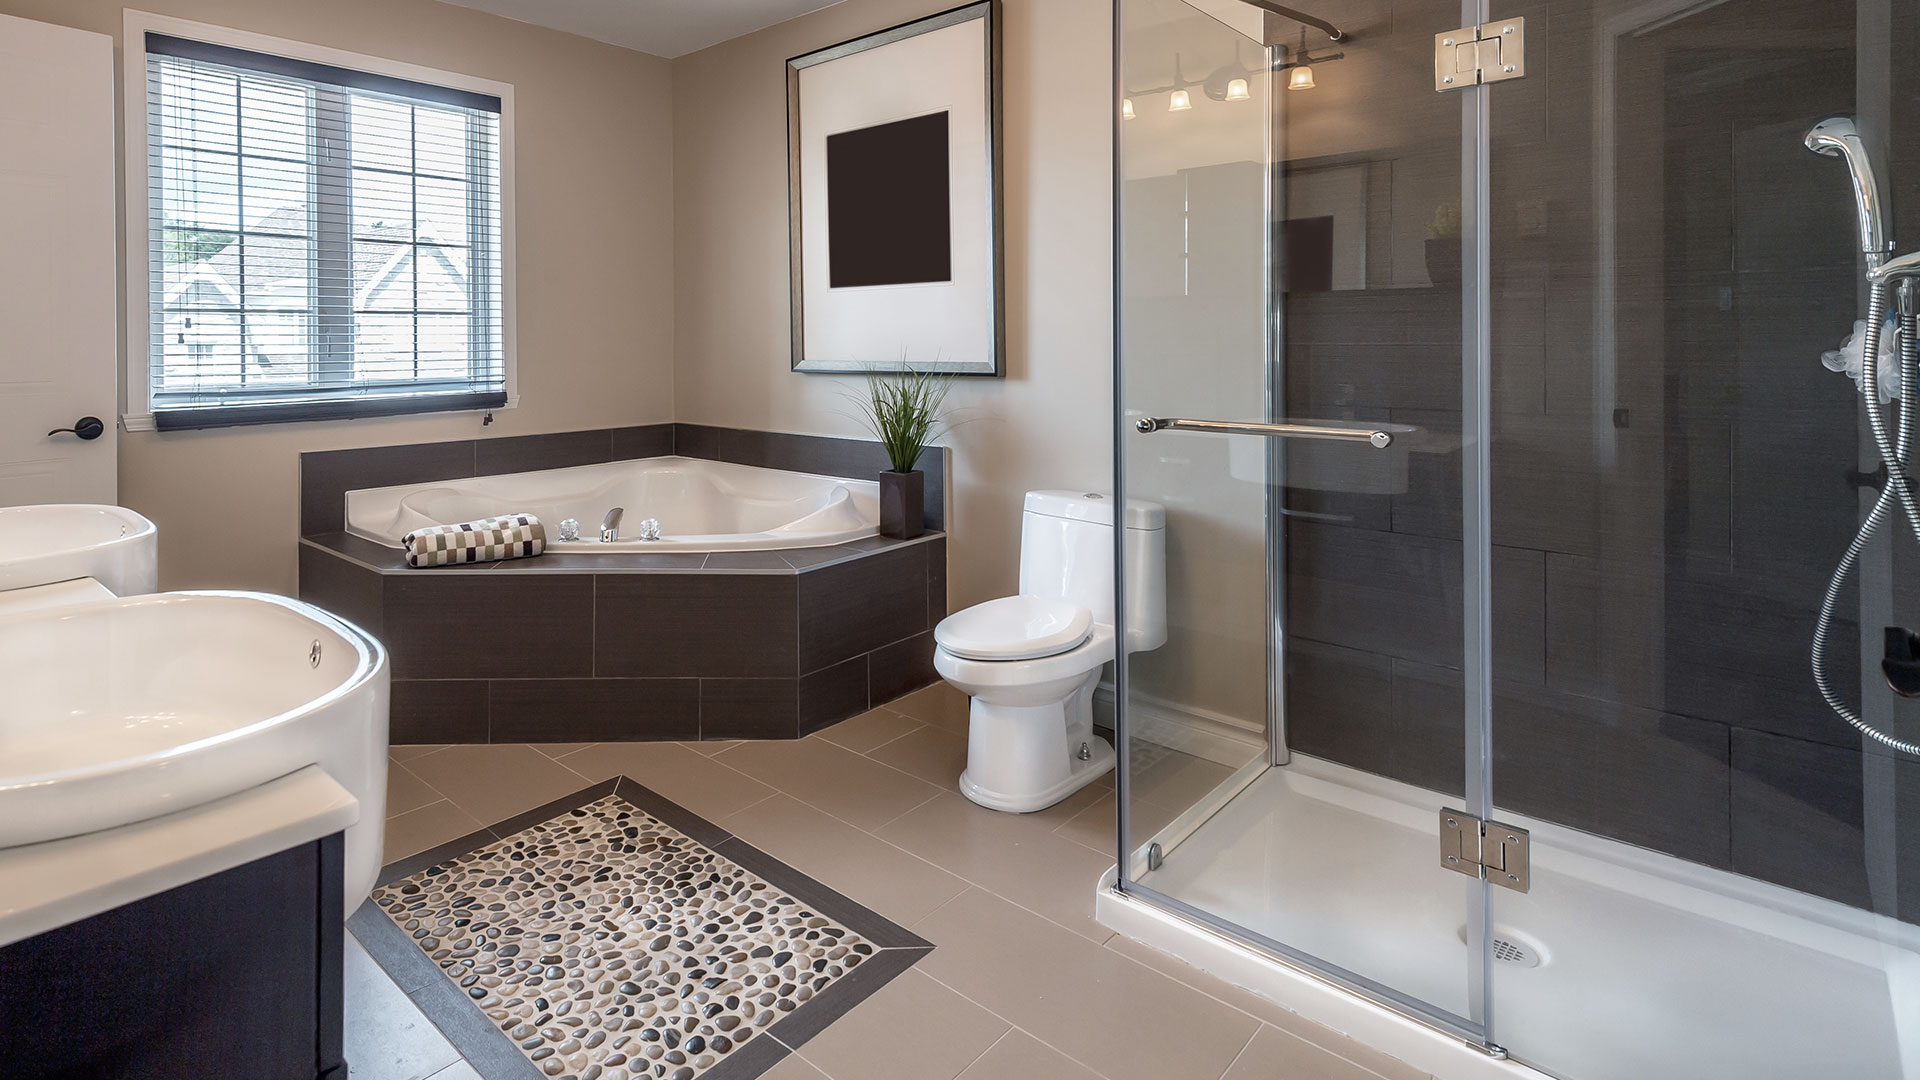 bathroom remodeling boise just idaho another site dnb previousnext wordpress remodel kitchen